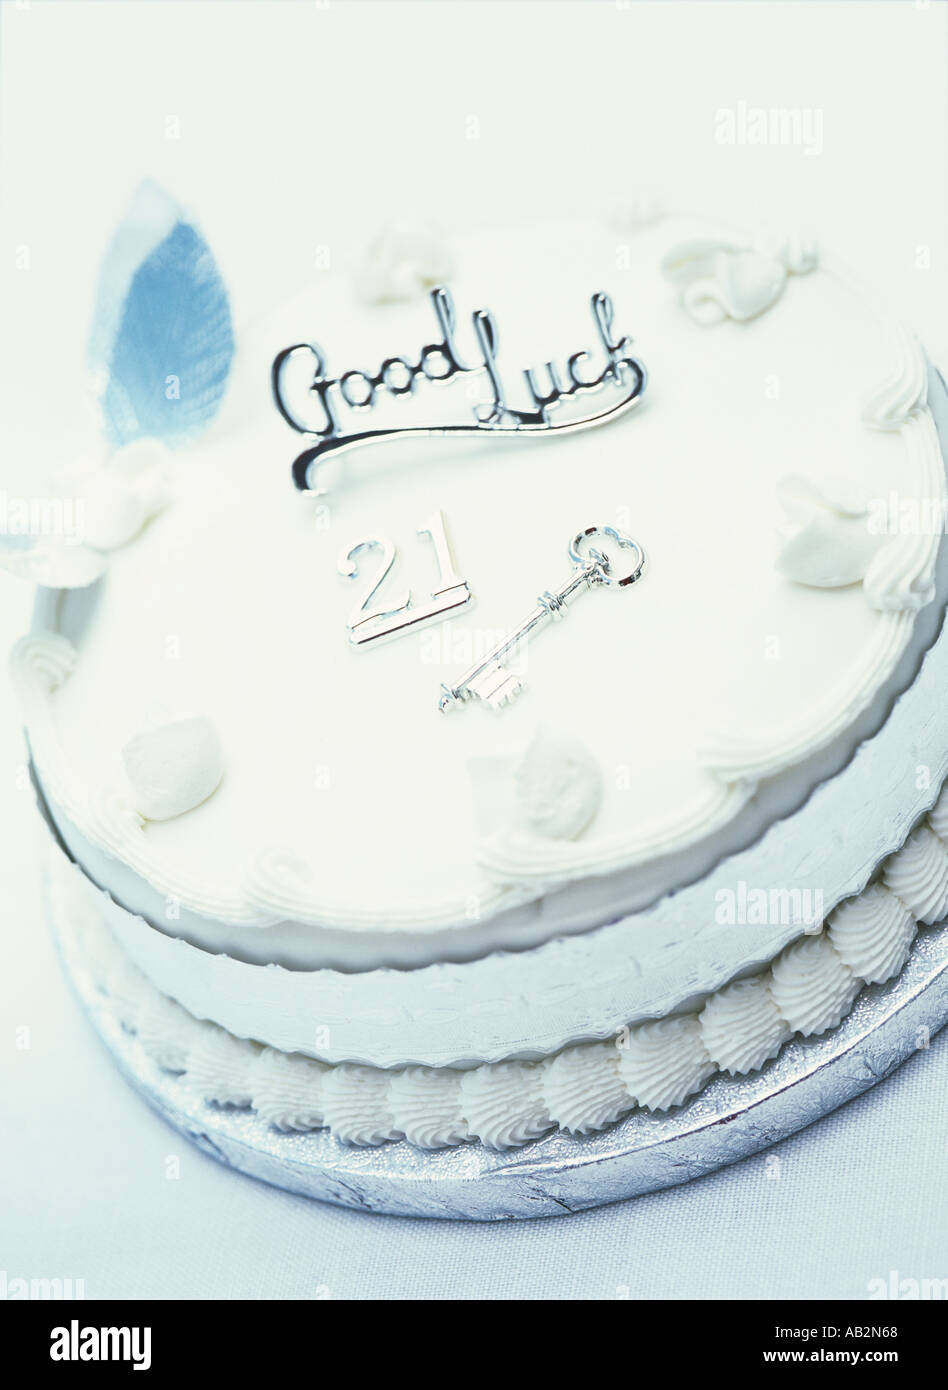 21st Birthday Cake Stock Photos Images